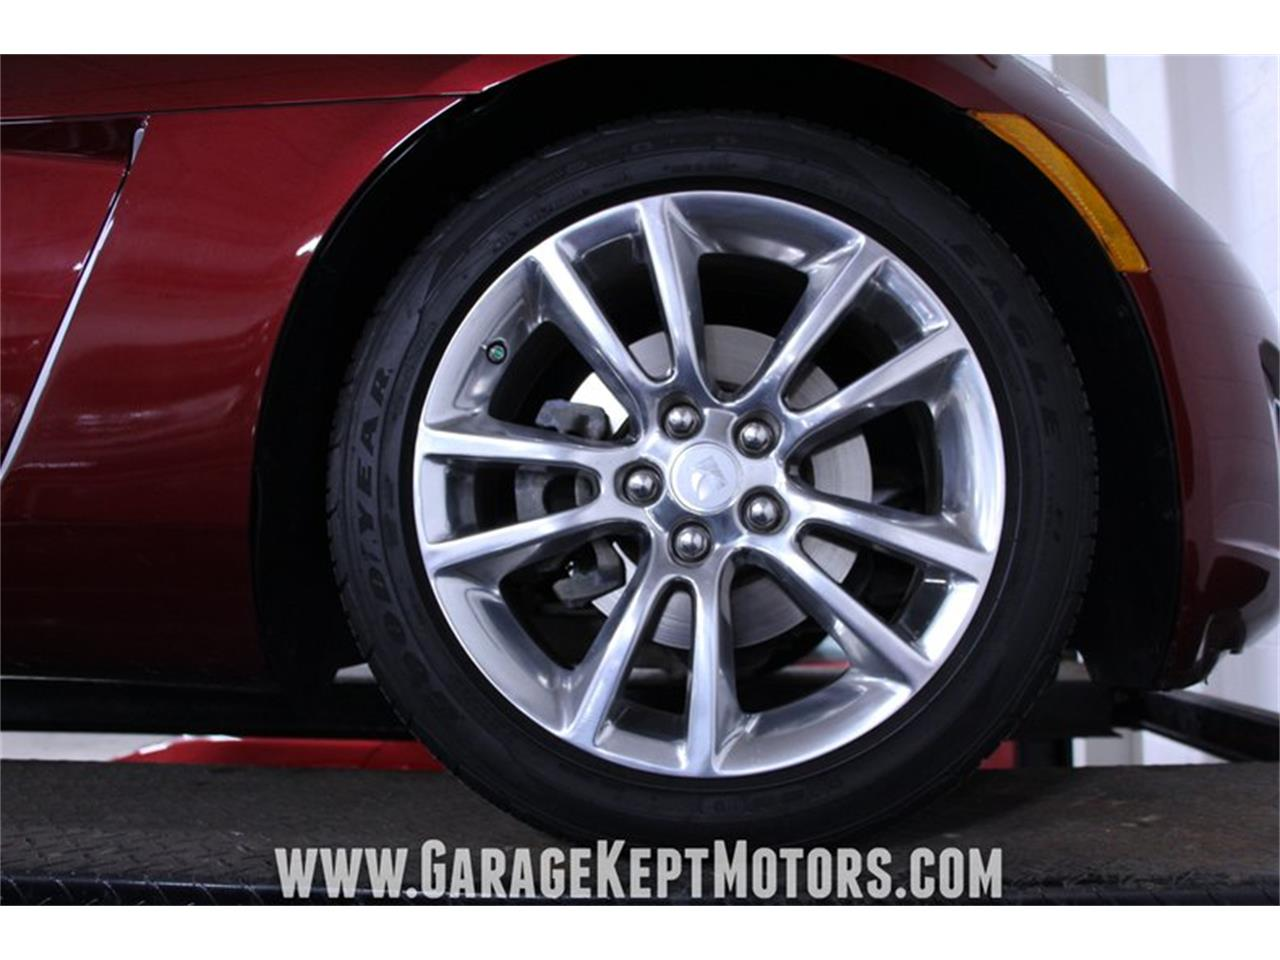 2009 Saturn Sky for sale in Grand Rapids, MI – photo 96